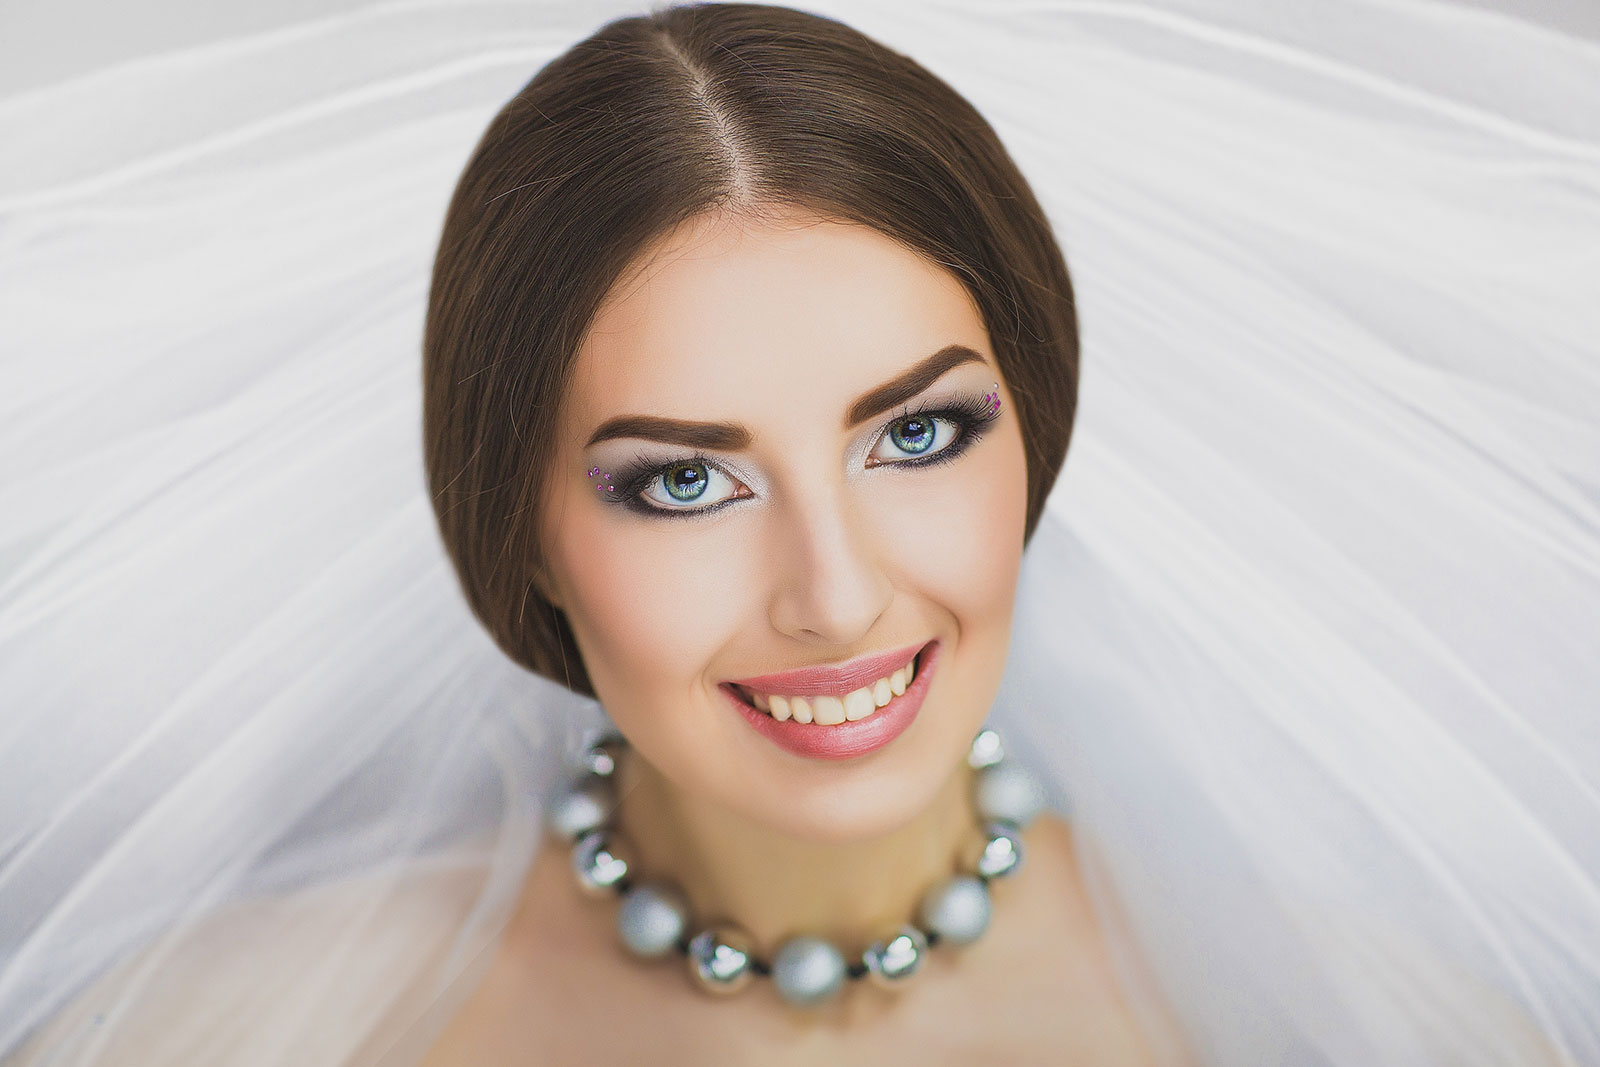 Extravagant Eyes wedding eye makeup